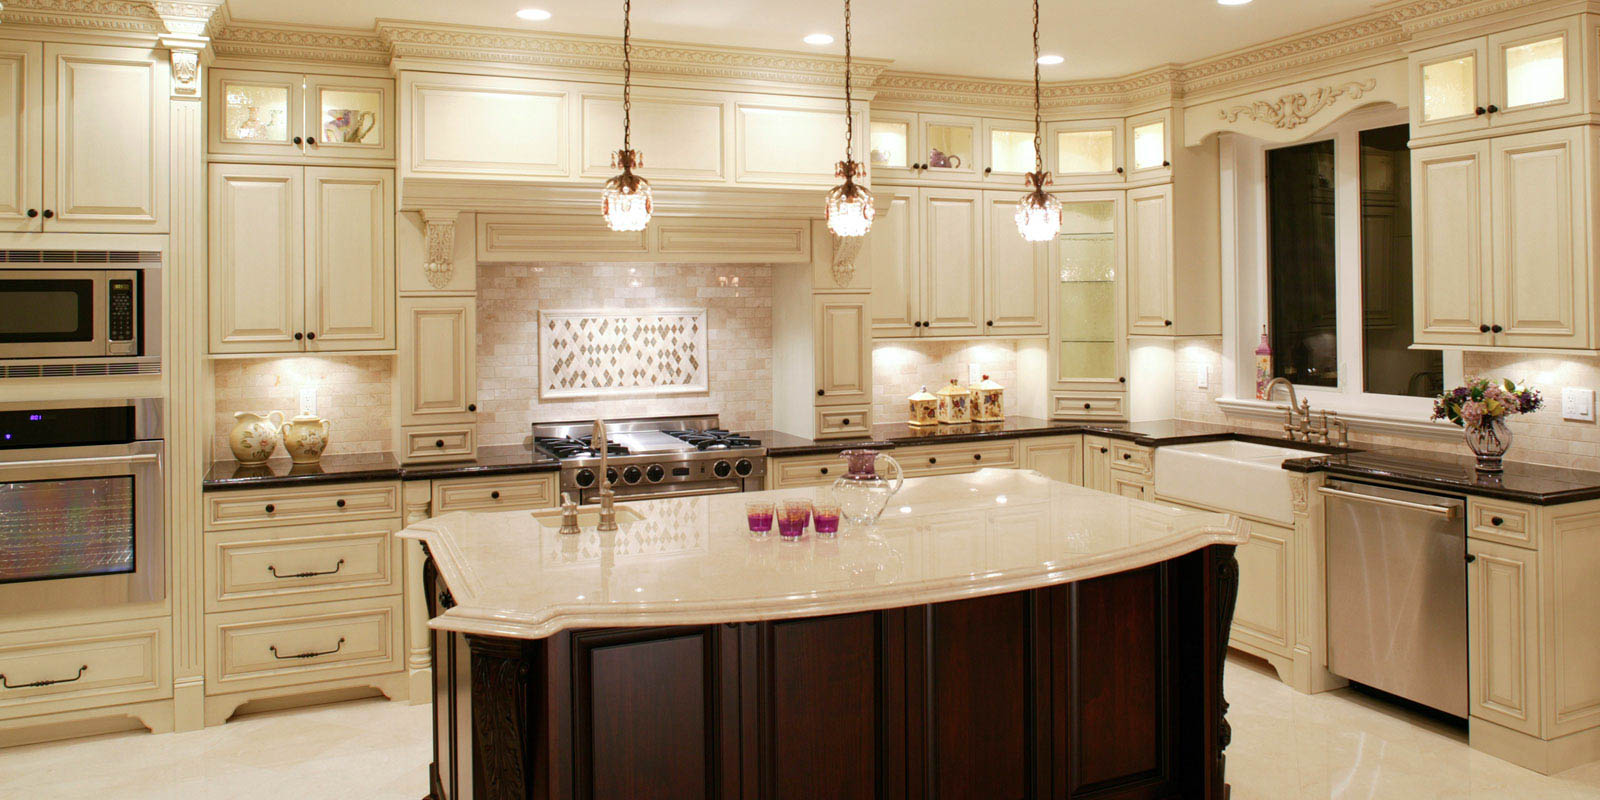 Elegant Kitchen Interior